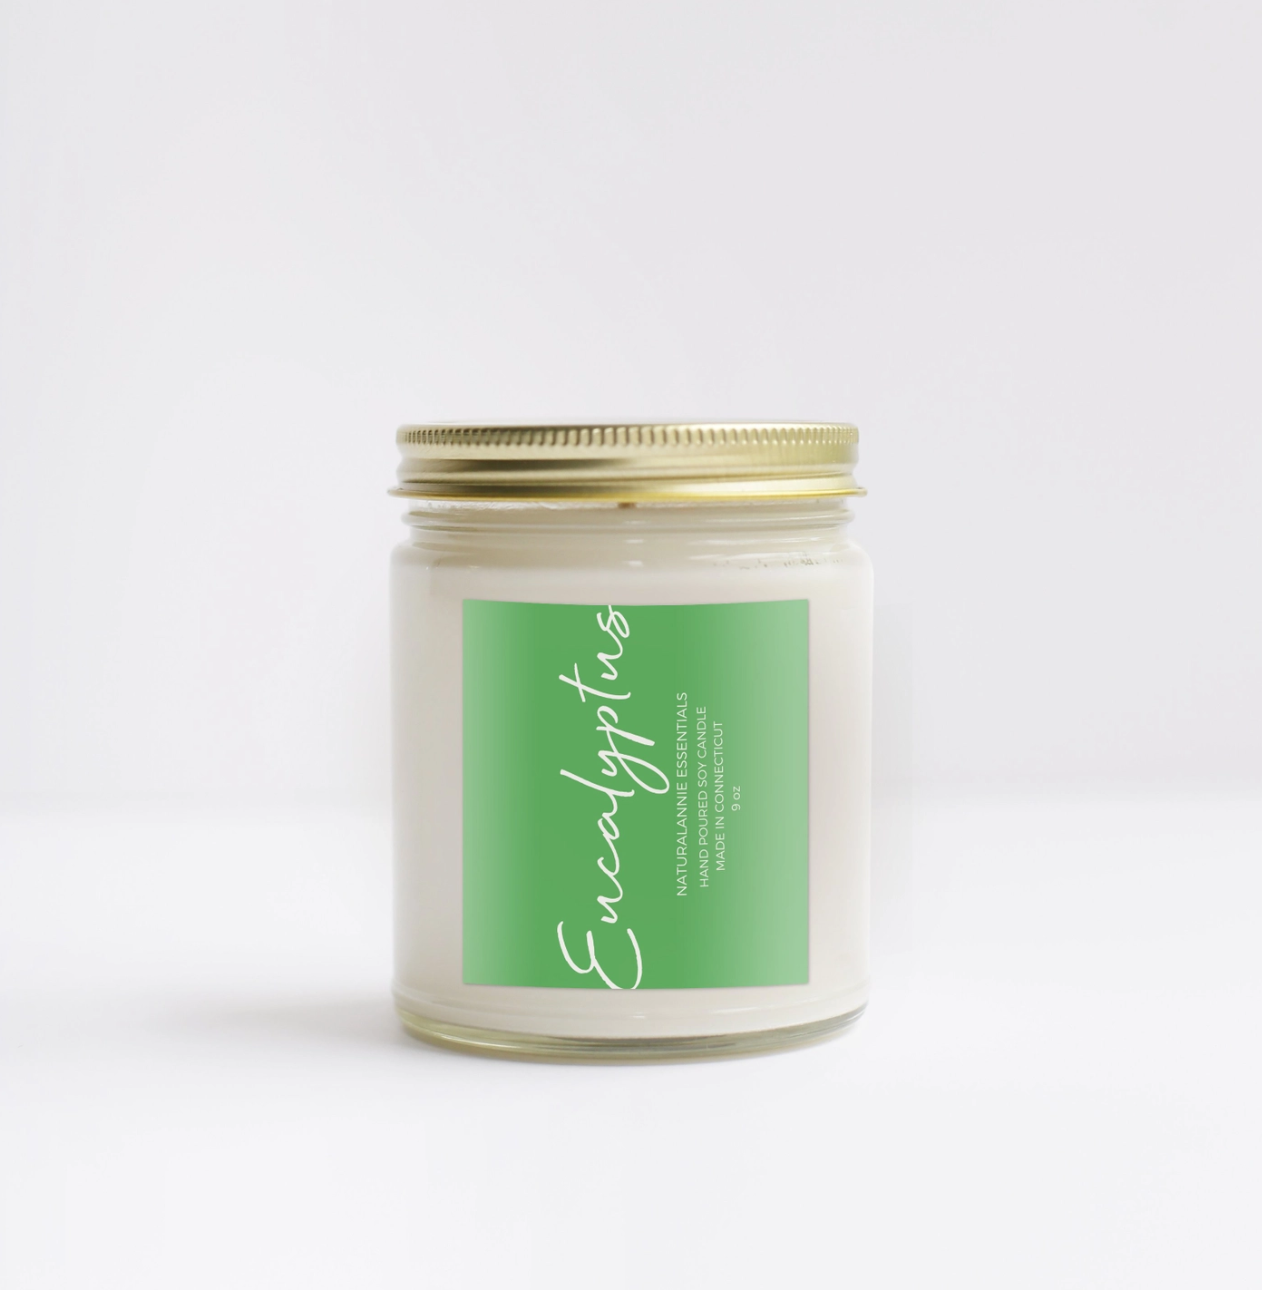 NaturalAnnie Essentials EUCALYPTUS Scented Soy Candle